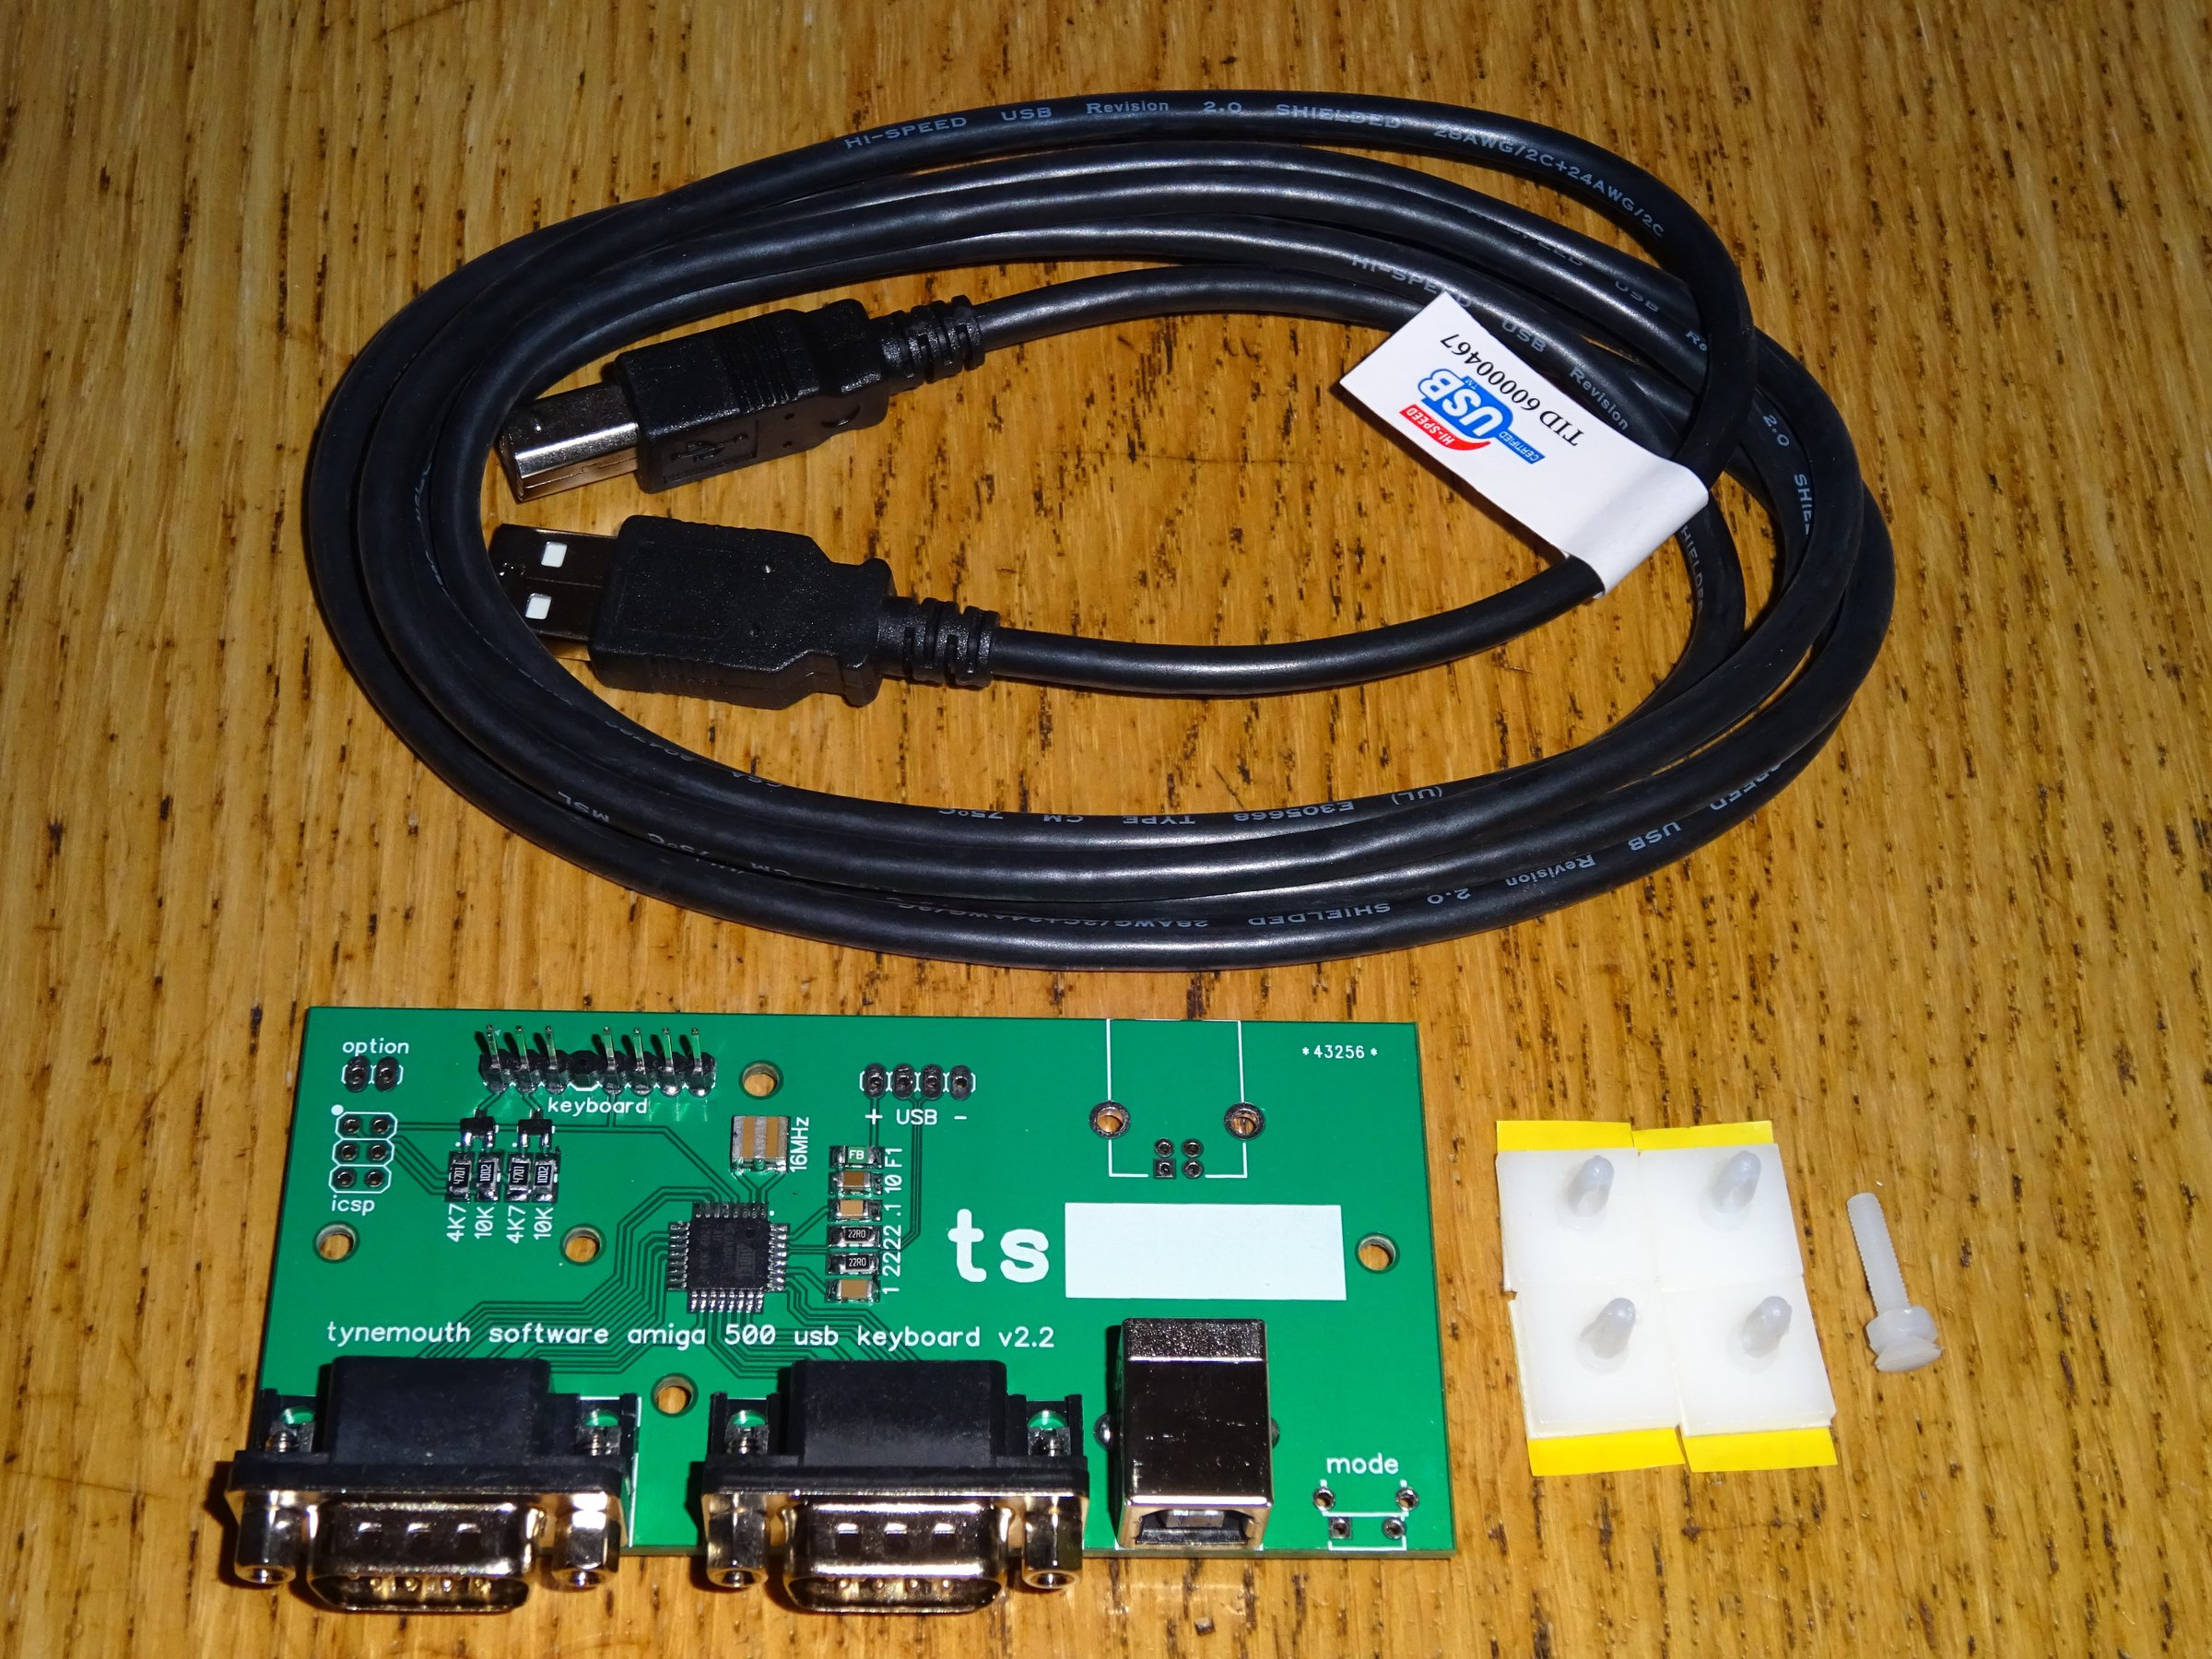 Zx Spectrum Usb Keyboard Conversion Kit From Tynemouth Software On Wiring Diagram Colorful How Can Install Wire Motif Electrical And Ideas